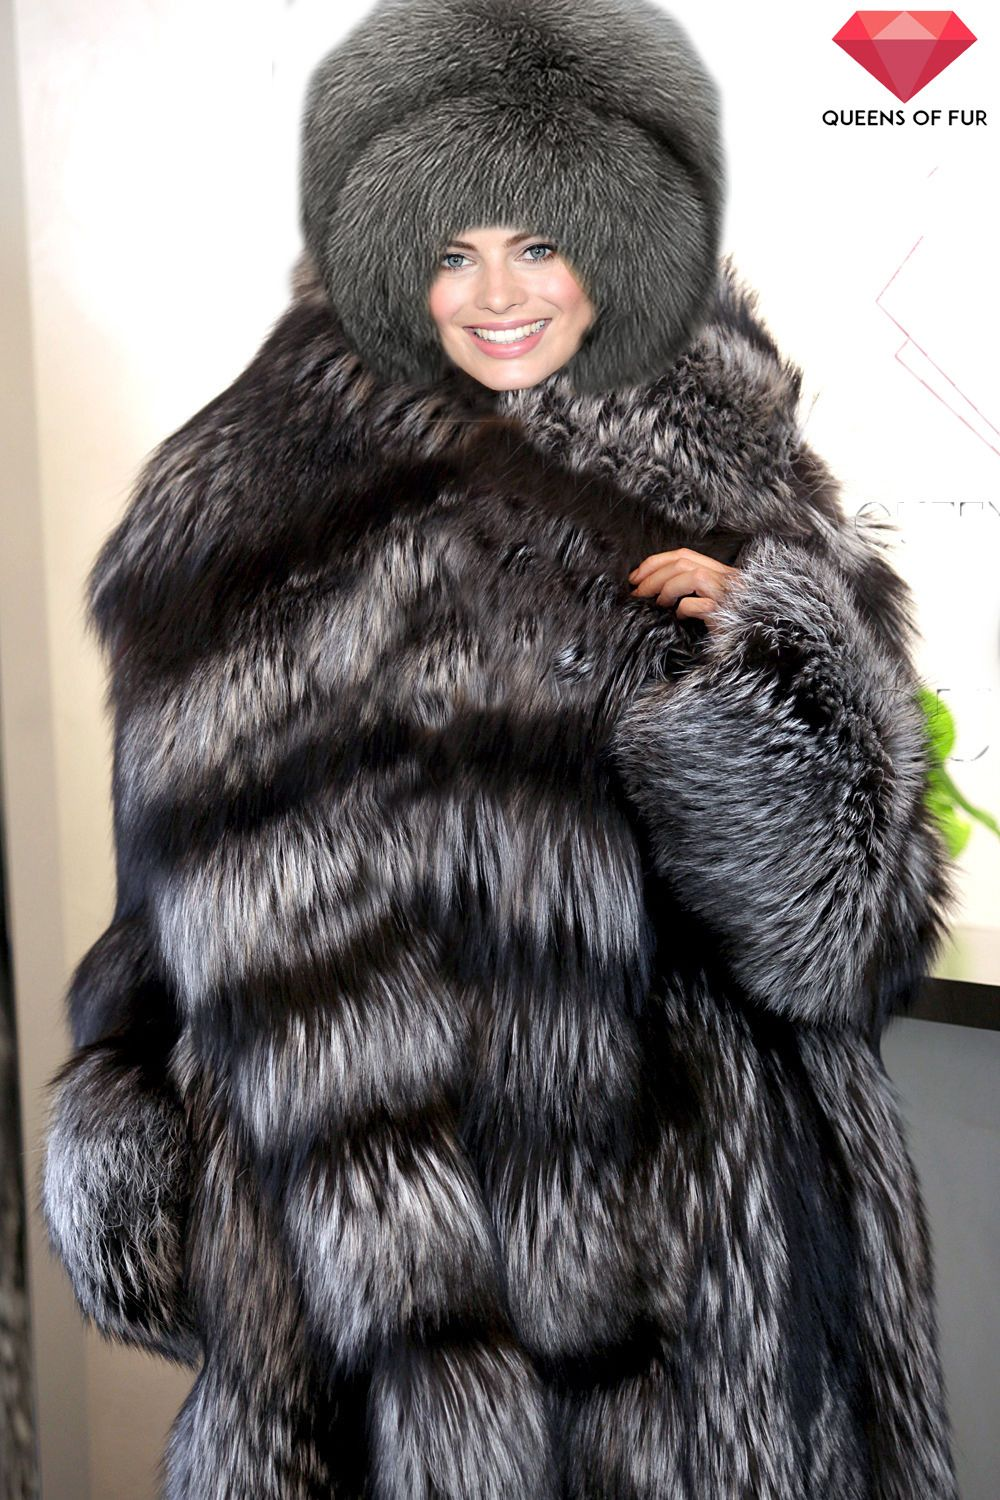 80f980caeec Margot Robbie in a silver fox fur coat and hat